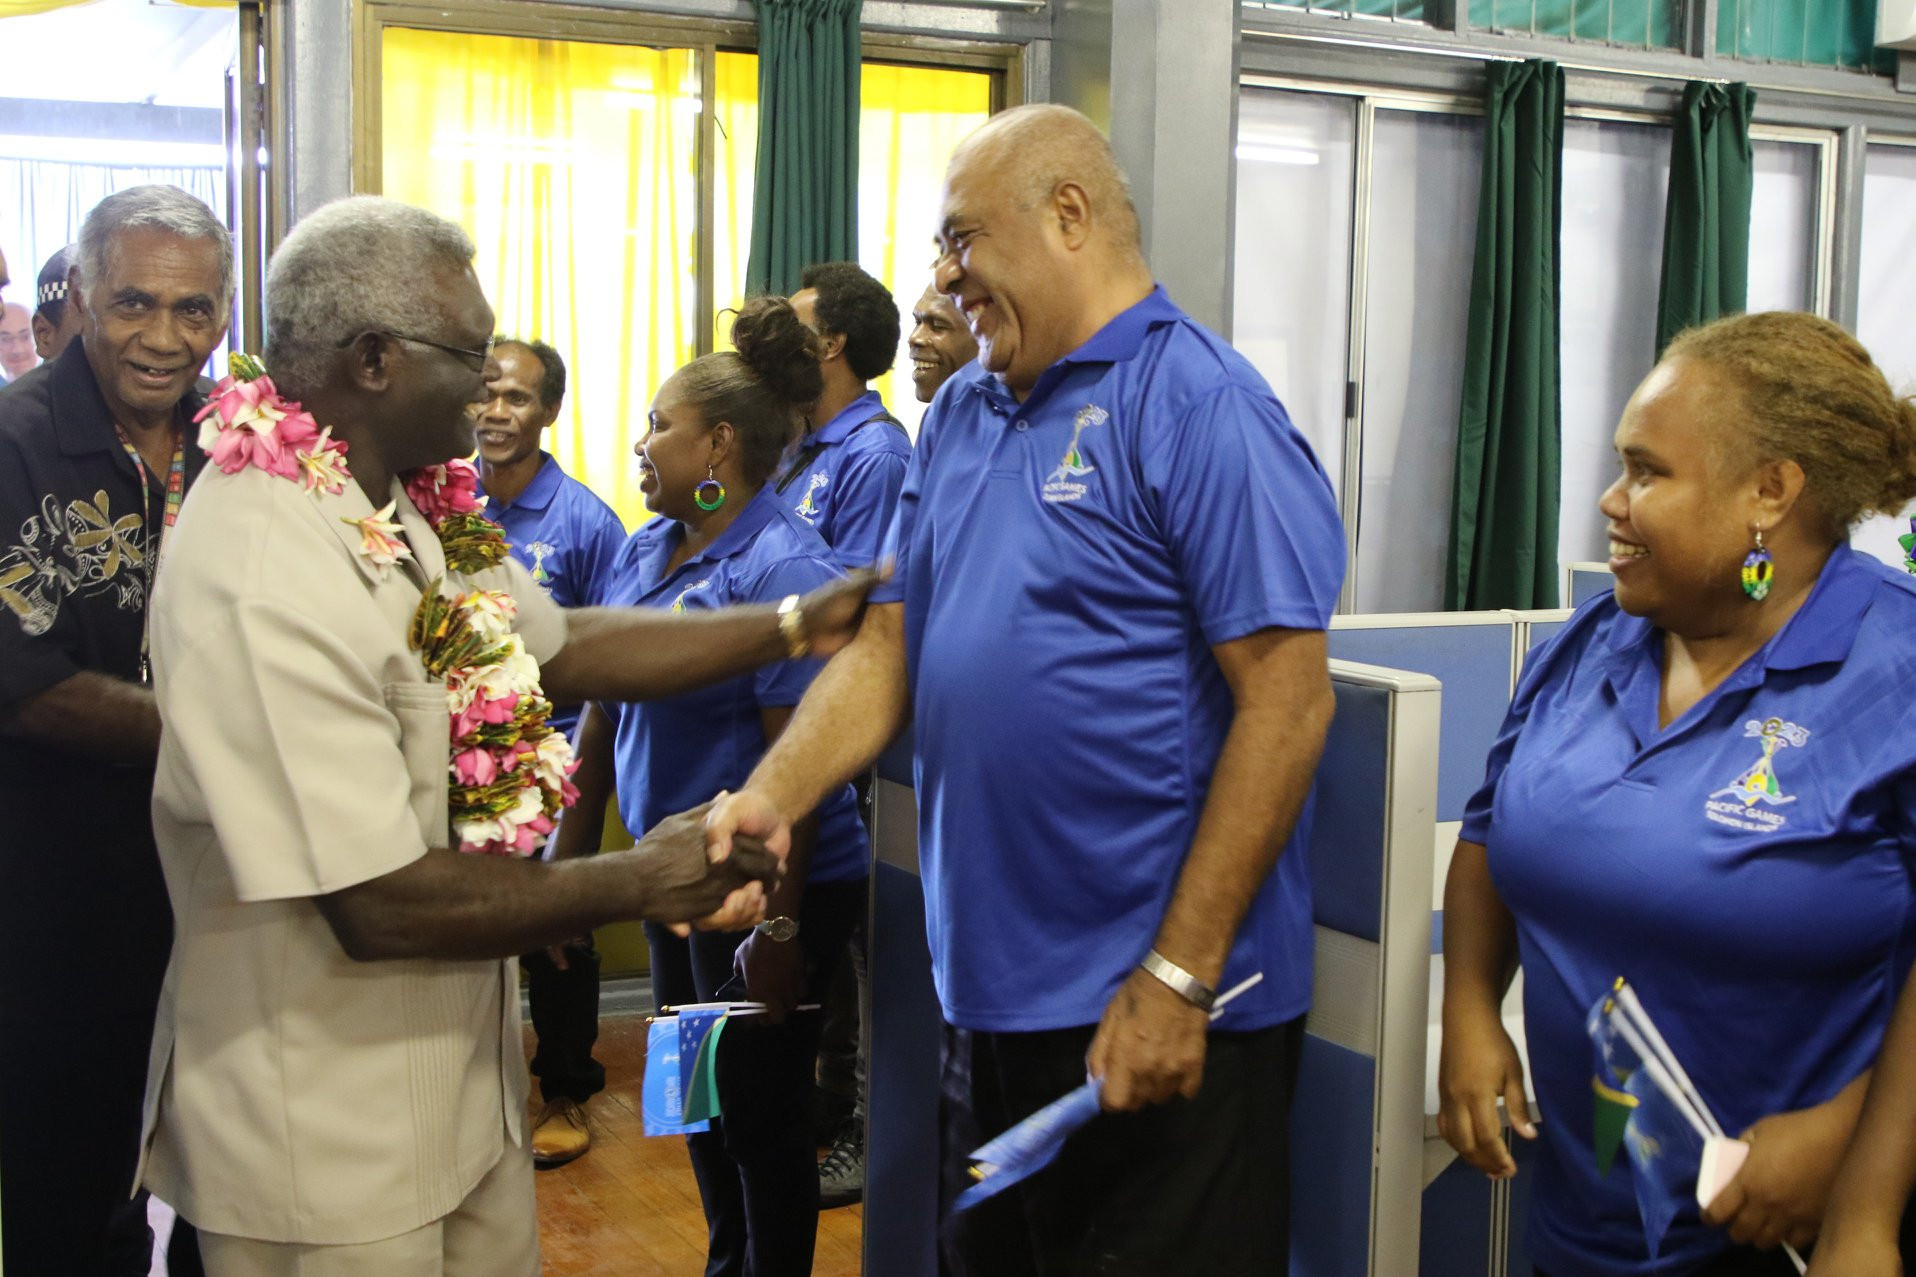 Workers at the new Solomon Islands 2023 offices greet the country's Prime Minister Manasseh Sogavare at the opening ©Solomon Islands Government